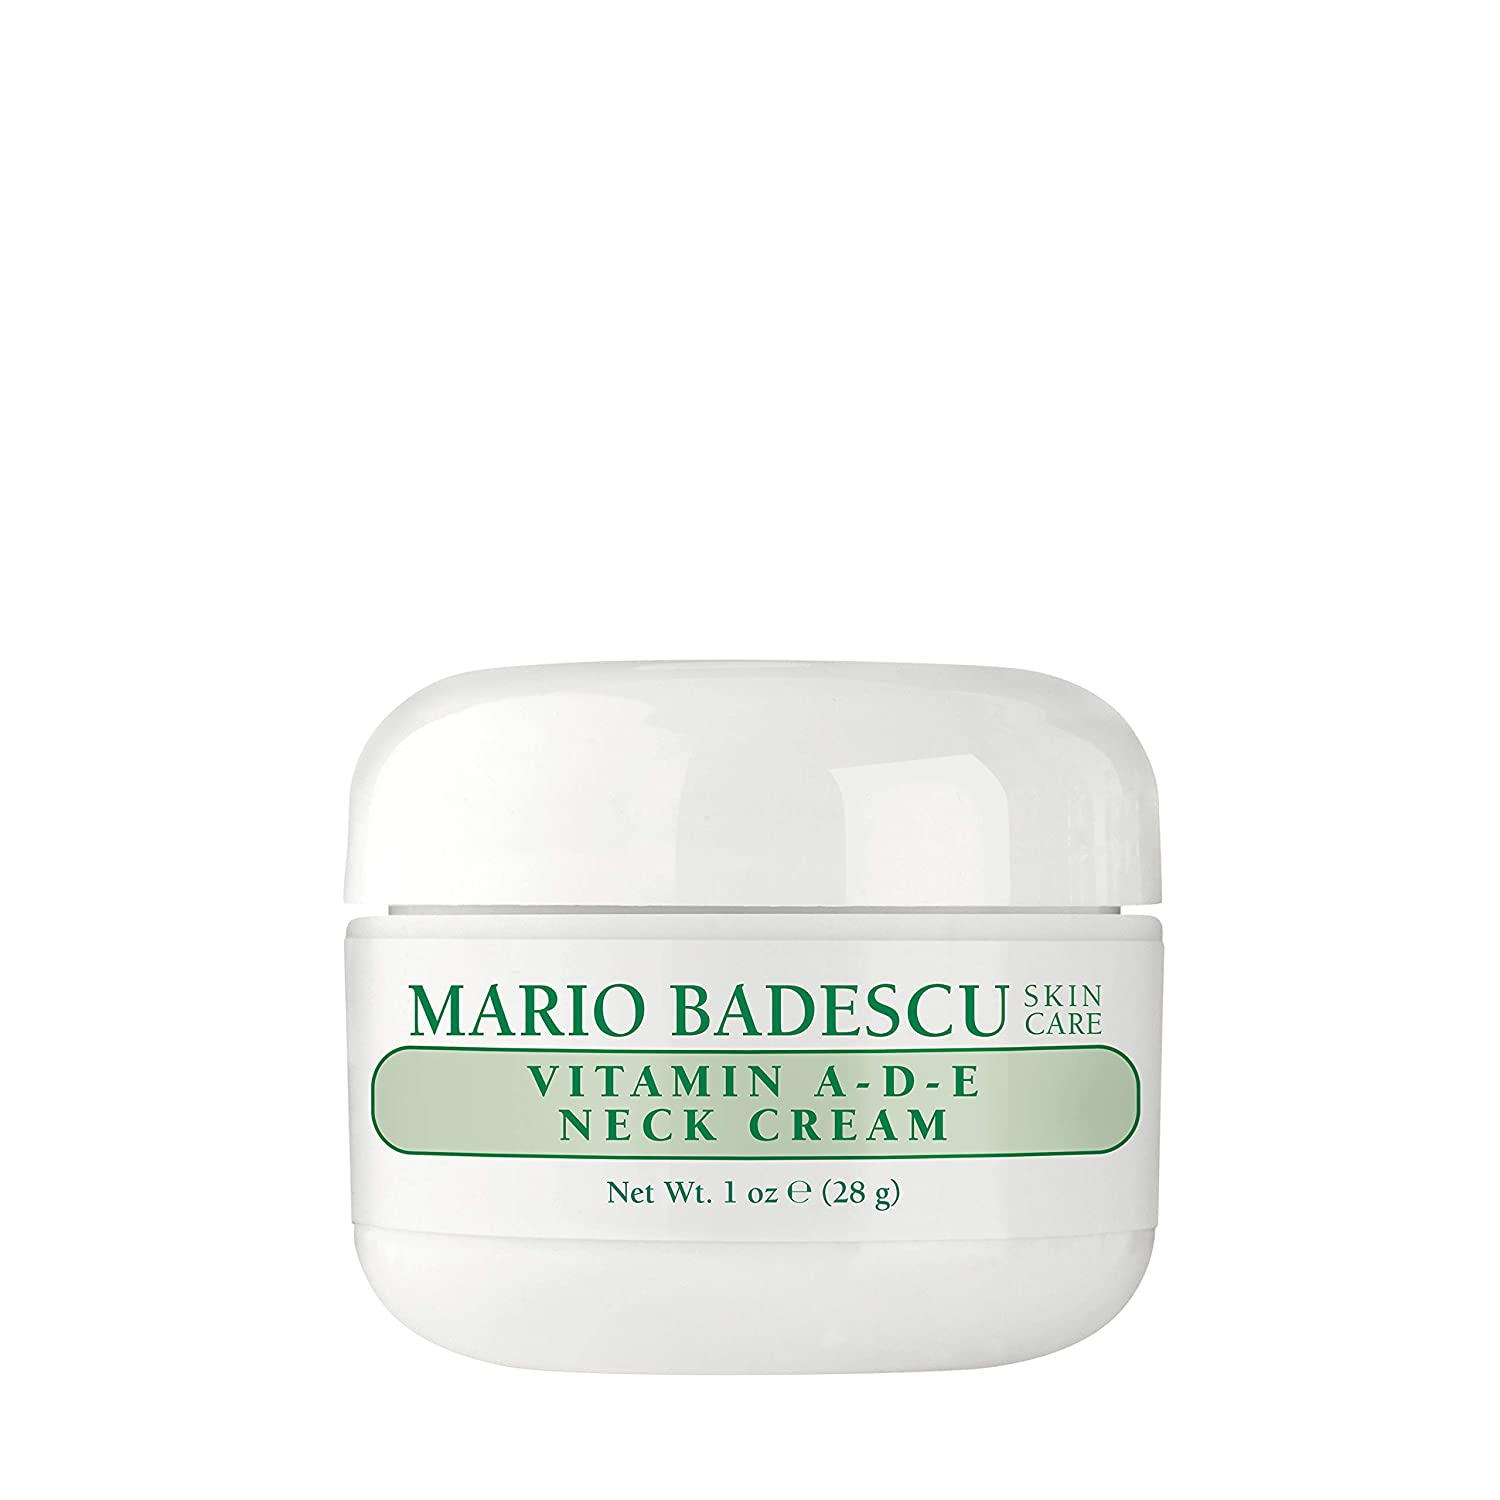 Mario Badescu Vitamin A-D-E Neck Cream, 1 oz: Premium Beauty